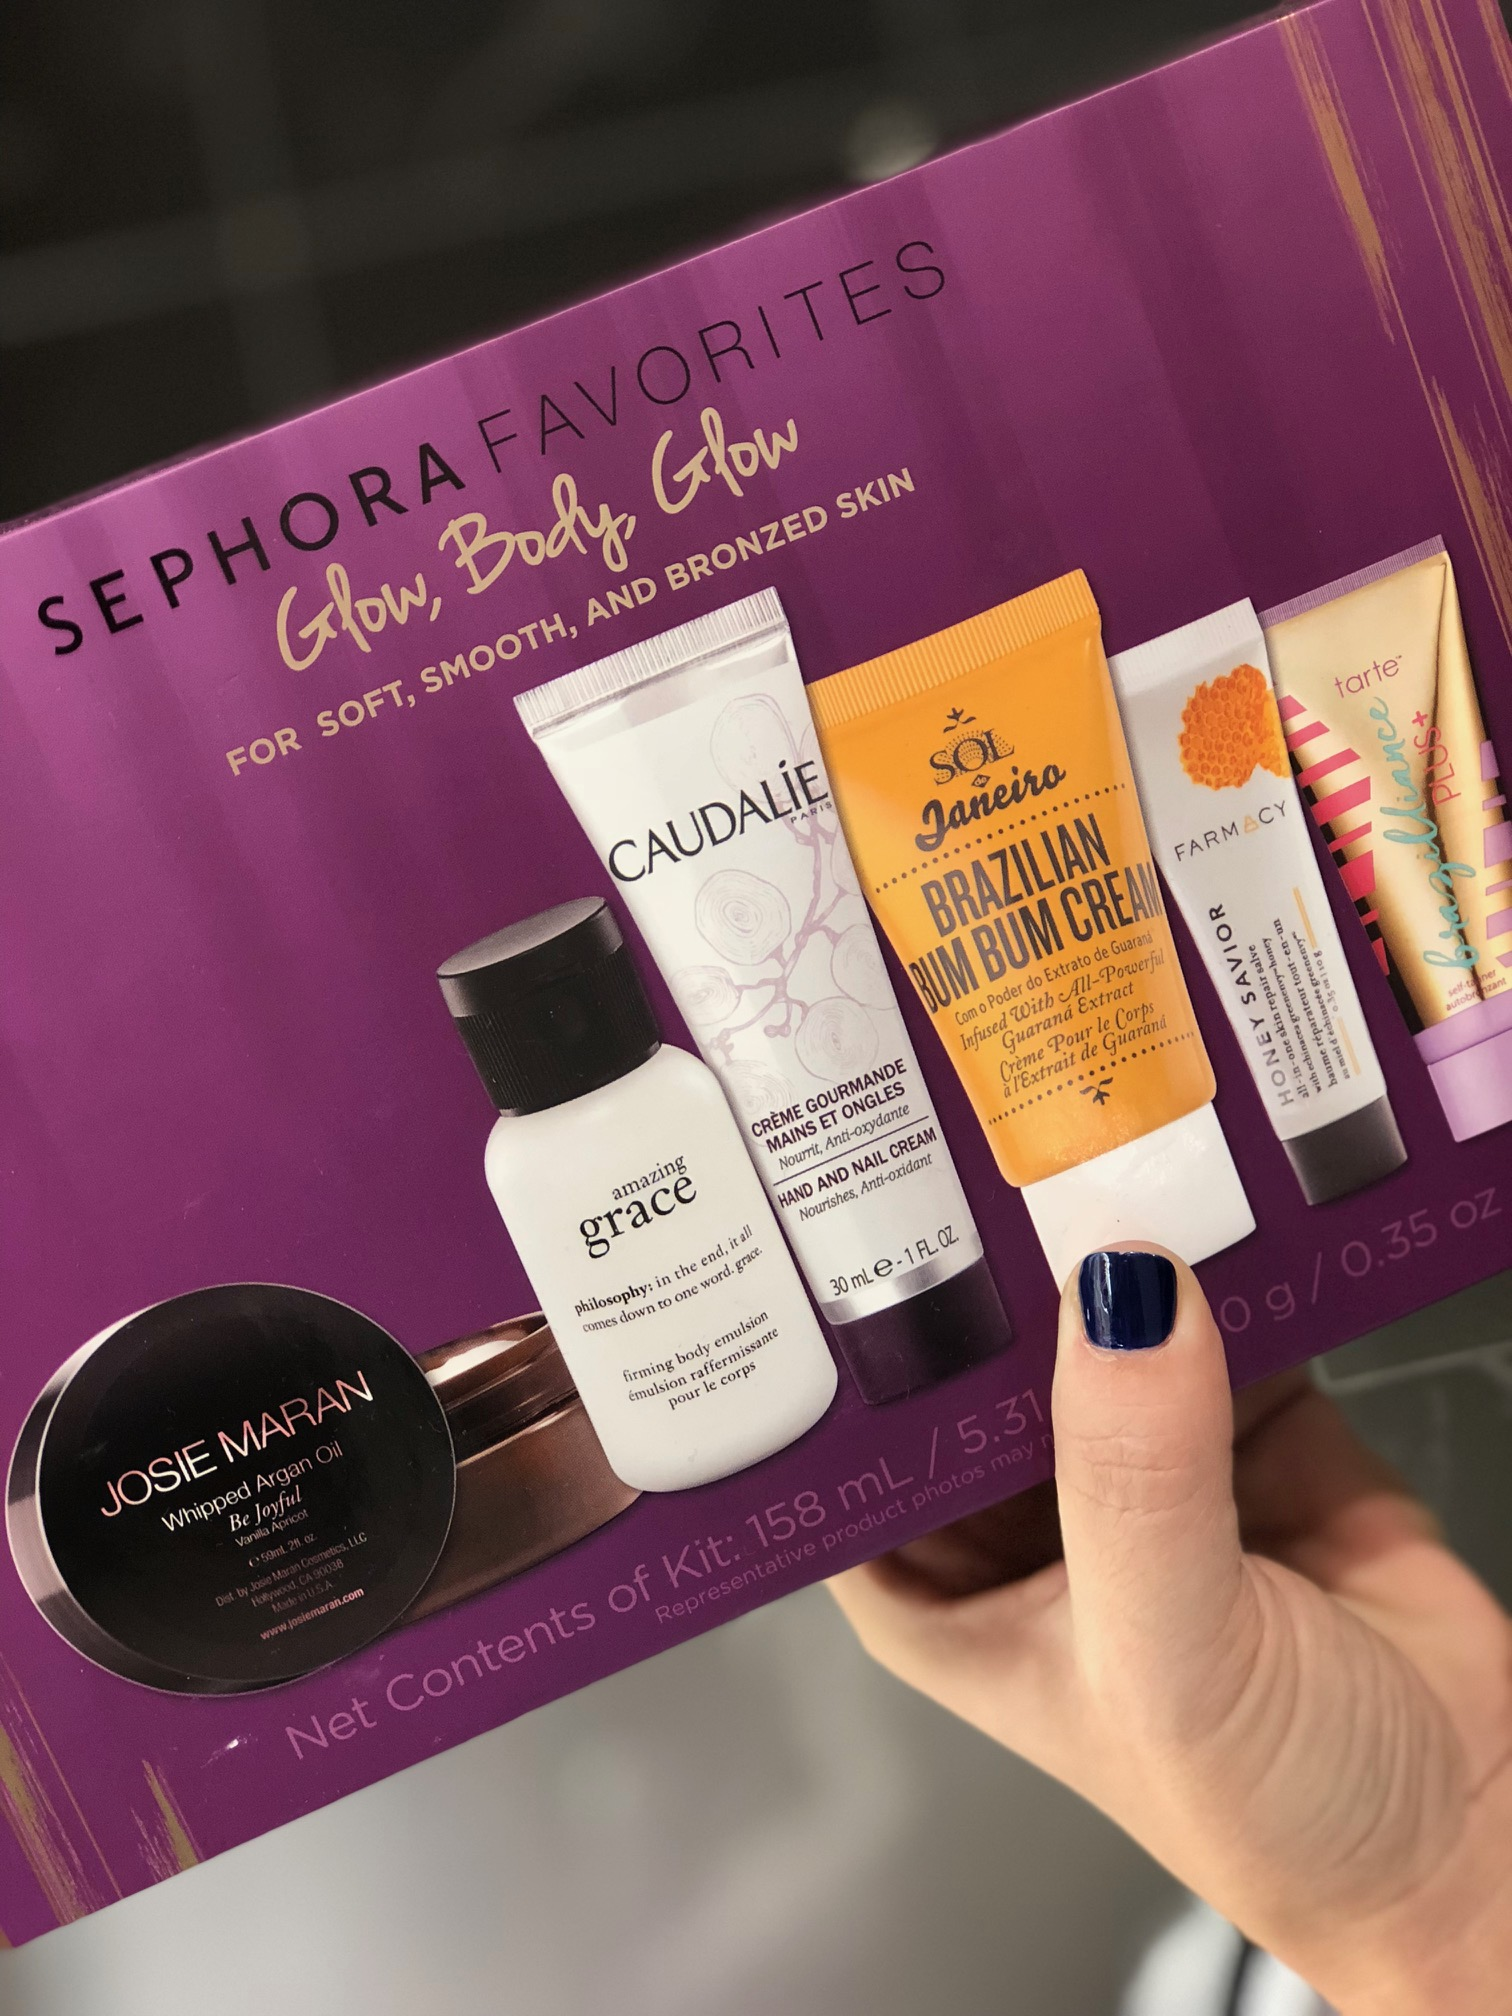 10 last-minute beauty gifts at Sephora in JCPenney Glow Body Blow set   Sponsor